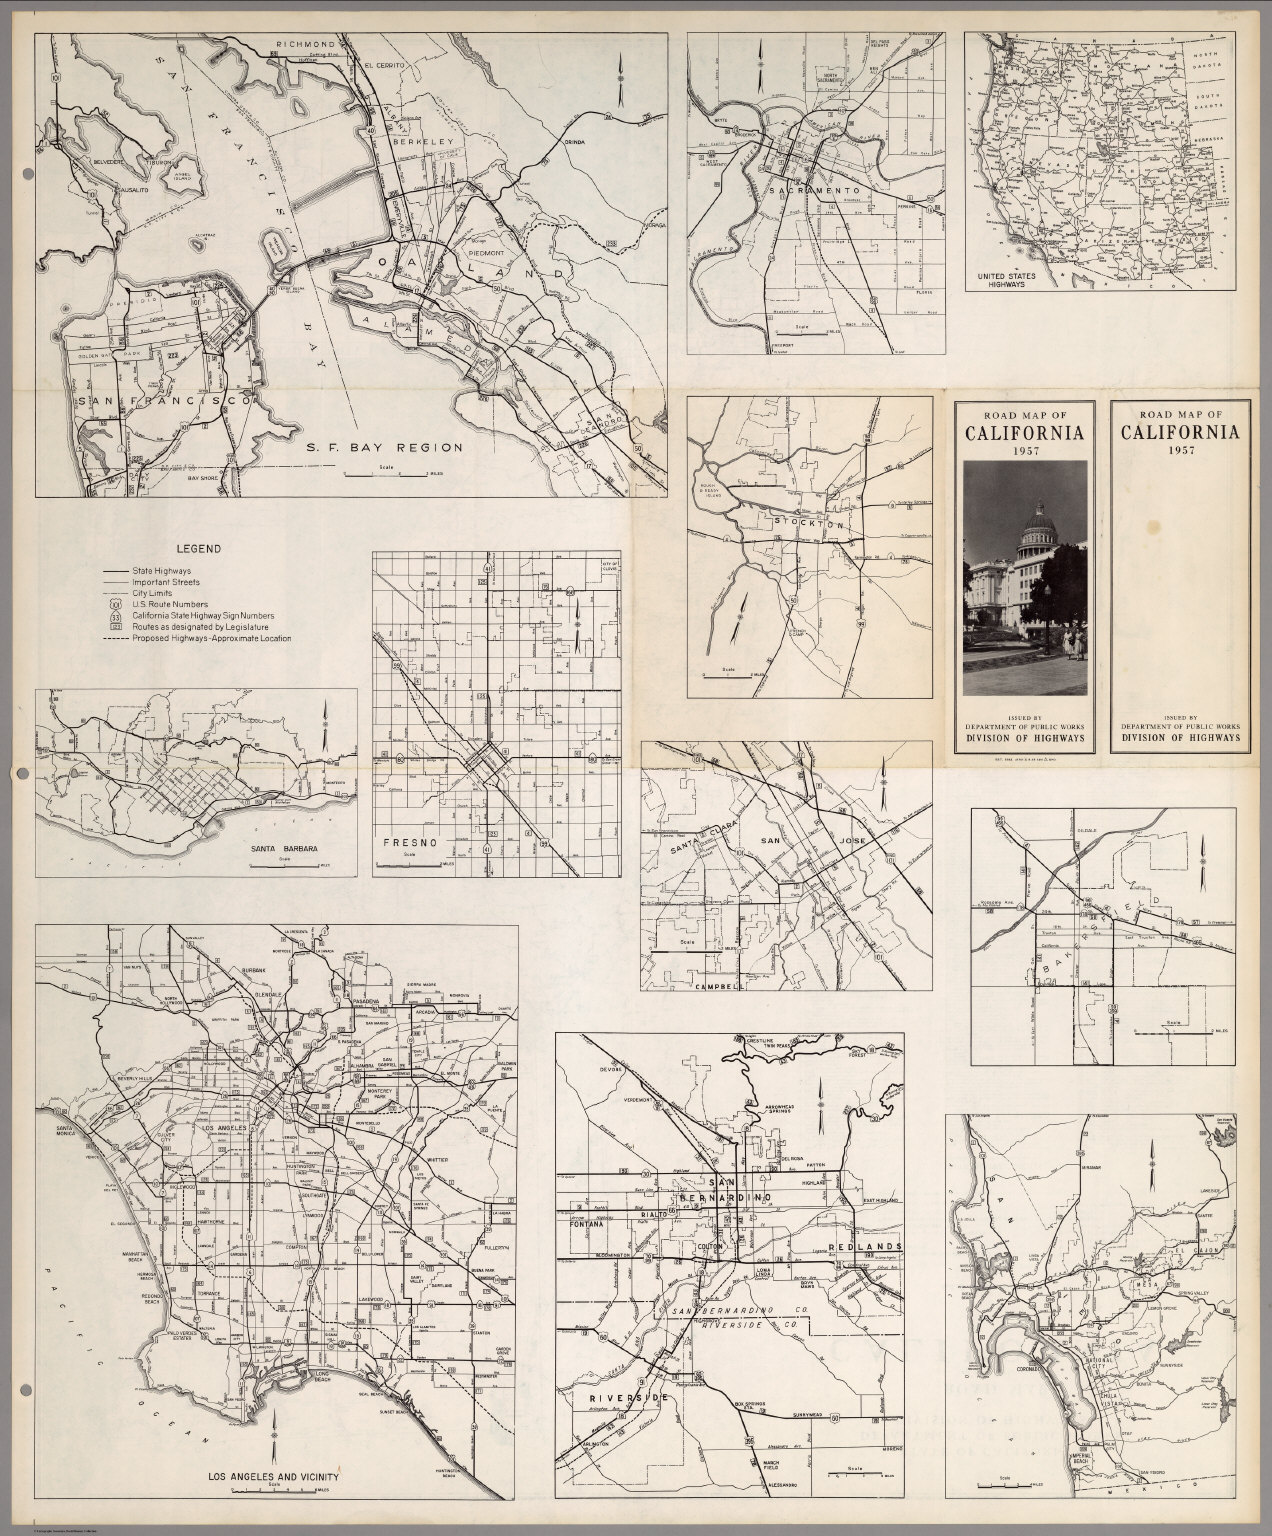 (Verso) Road Map of the State of California, 1957.